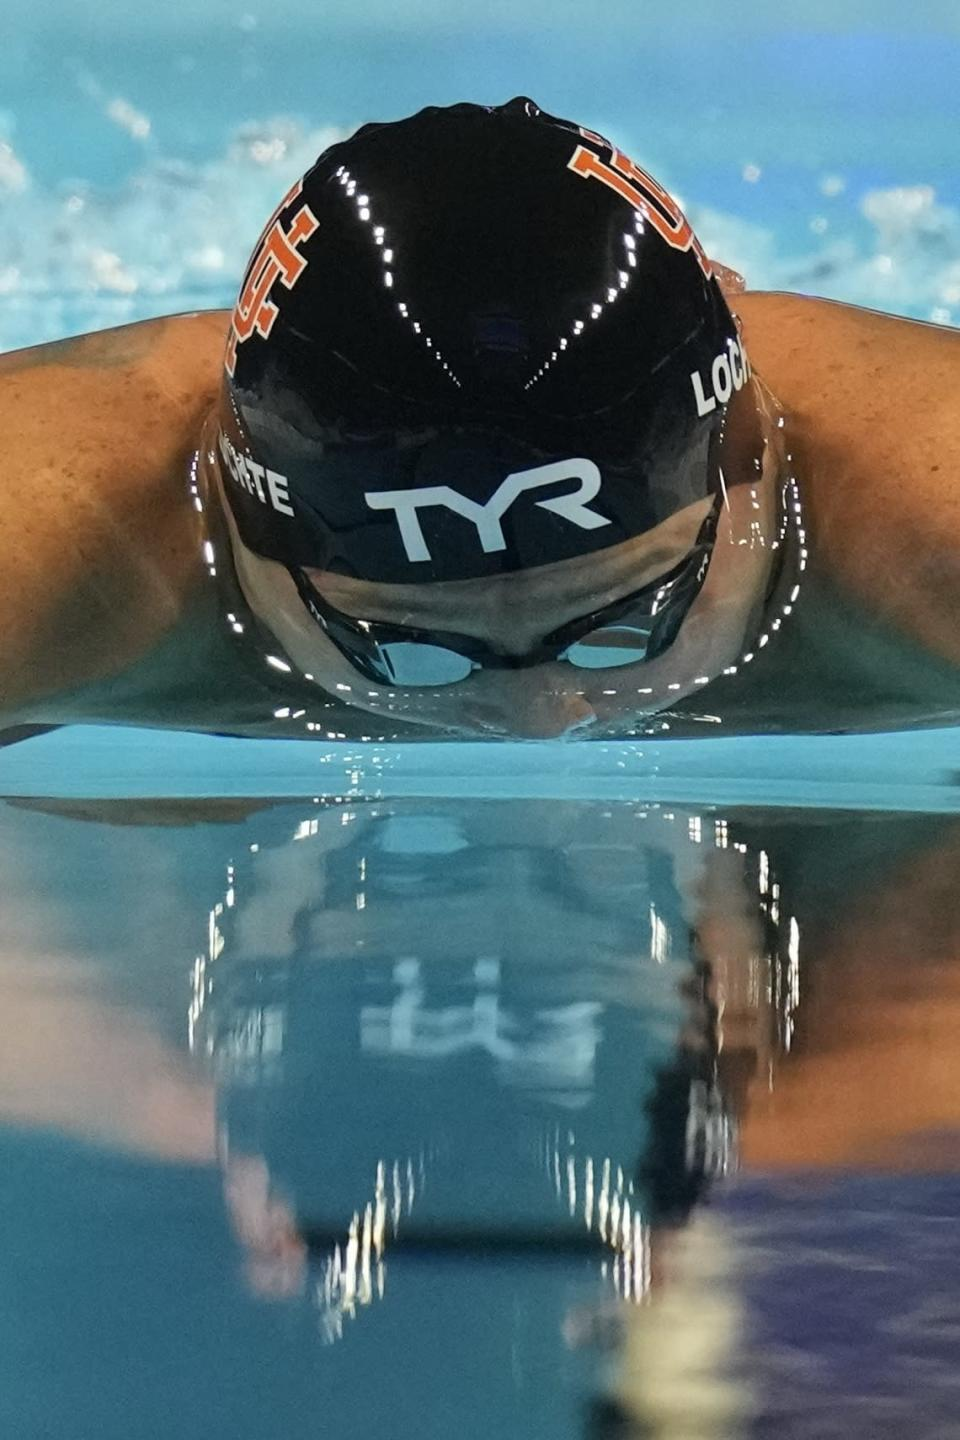 Ryan Lochte participates in the men's 200 Individual Medley during wave 2 of the U.S. Olympic Swim Trials on Thursday, June 17, 2021, in Omaha, Neb. (AP Photo/Charlie Neibergall)